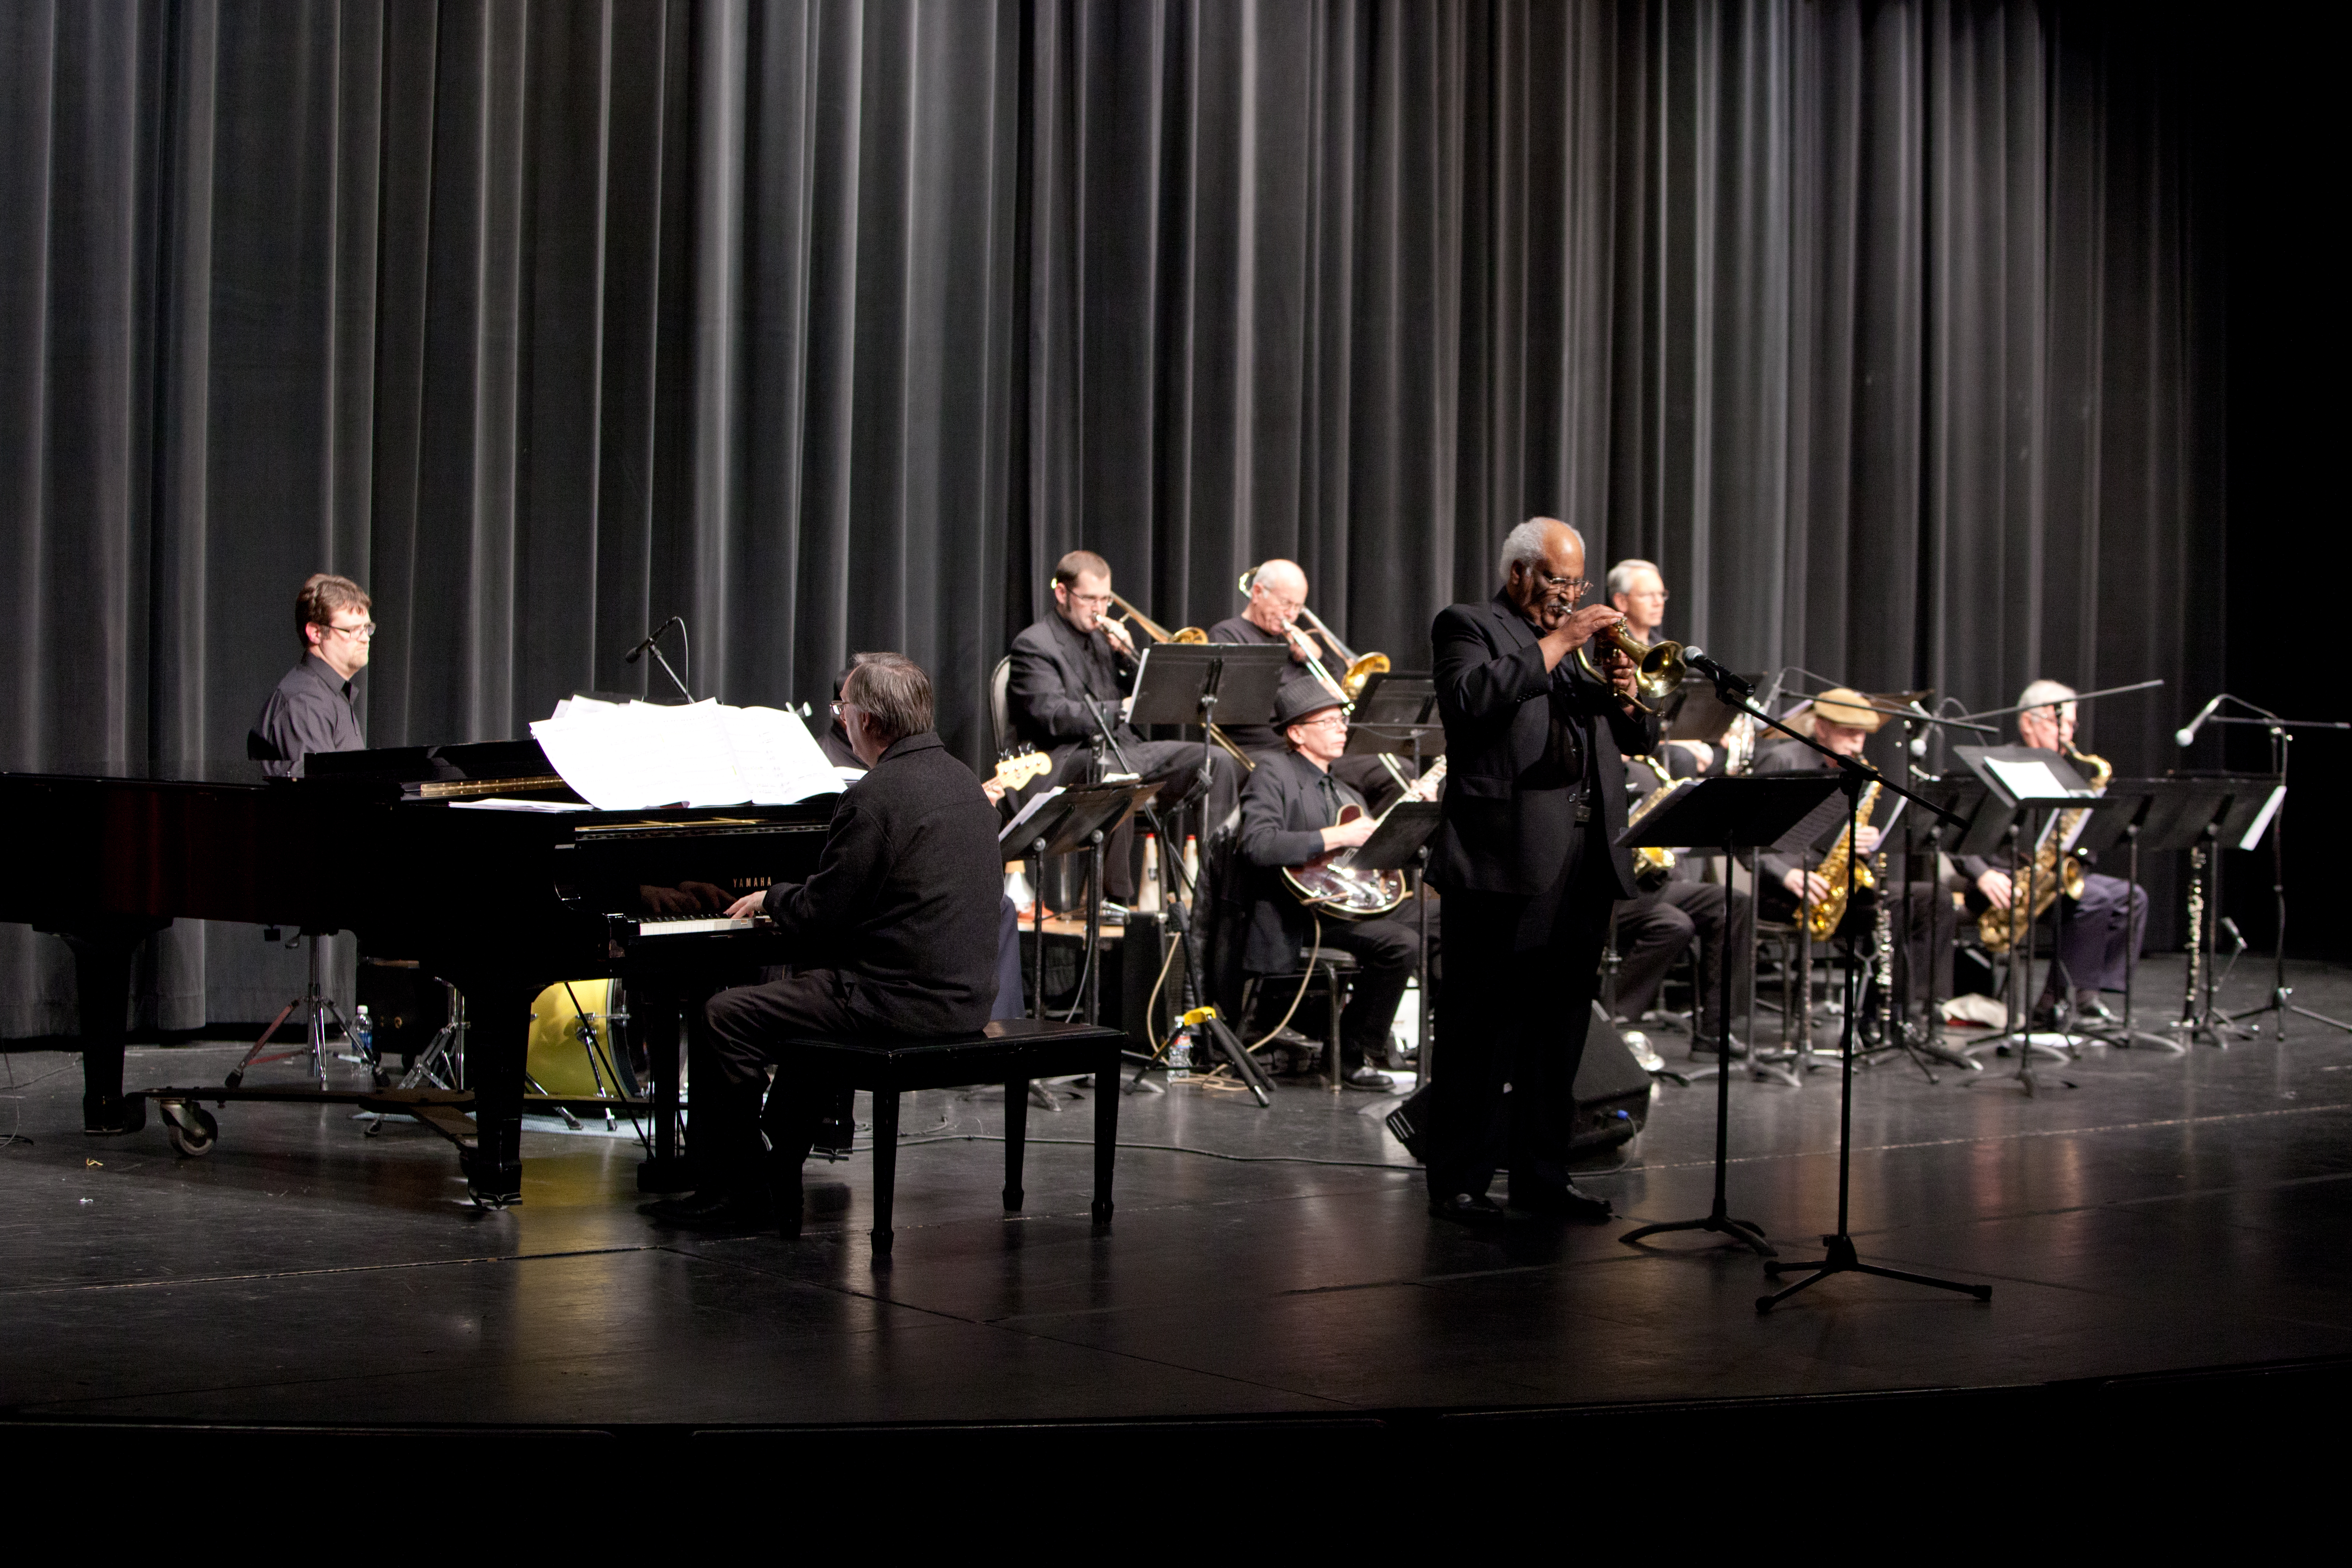 Al Pearson featured soloist on Shades of Grey